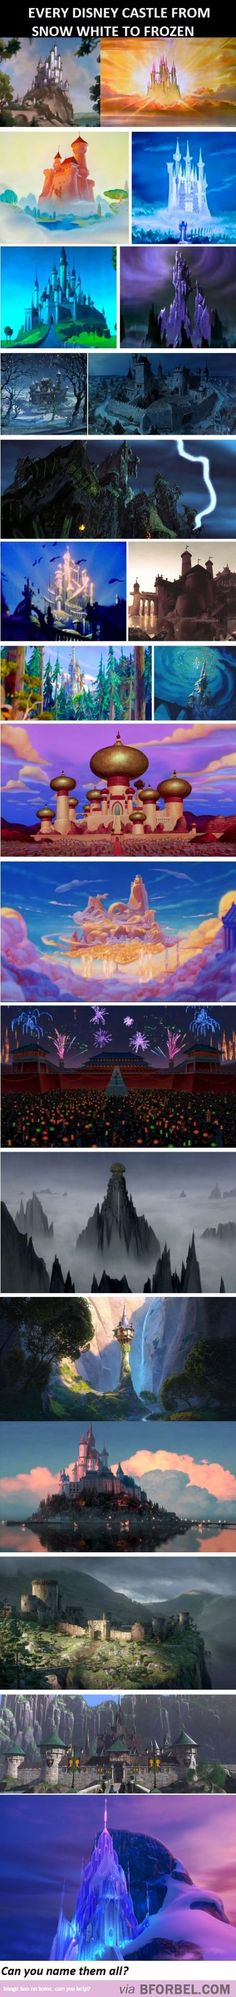 22 Disney Castles Across Time - Snow White, IDK, Fantasia, Cinderella, IDK, IDK, The Sword in the Stone, Robin Hood, The Black Cauldron? The Little Mermaid, The Little Mermaid, Beauty and the Beast, Fantasia 2000?, Aladin, Hercules, Mulan, The Road to El Dorado?, Rapunzel, Rapunzel, Brave, Frozen and Frozen.